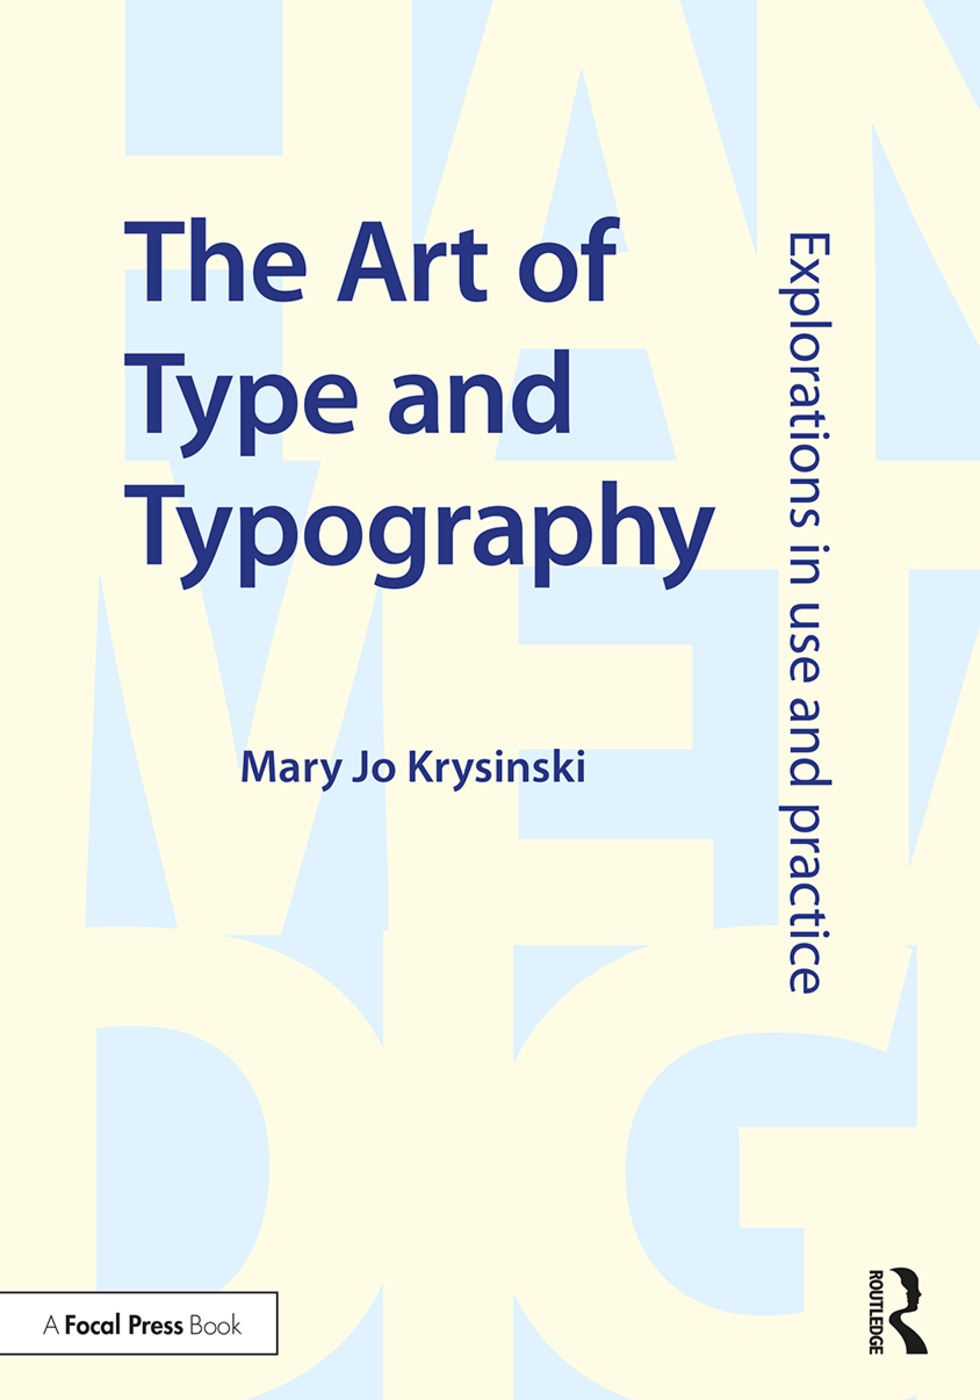 The Art of Type and Typography: Explorations in Use and Practice book cover